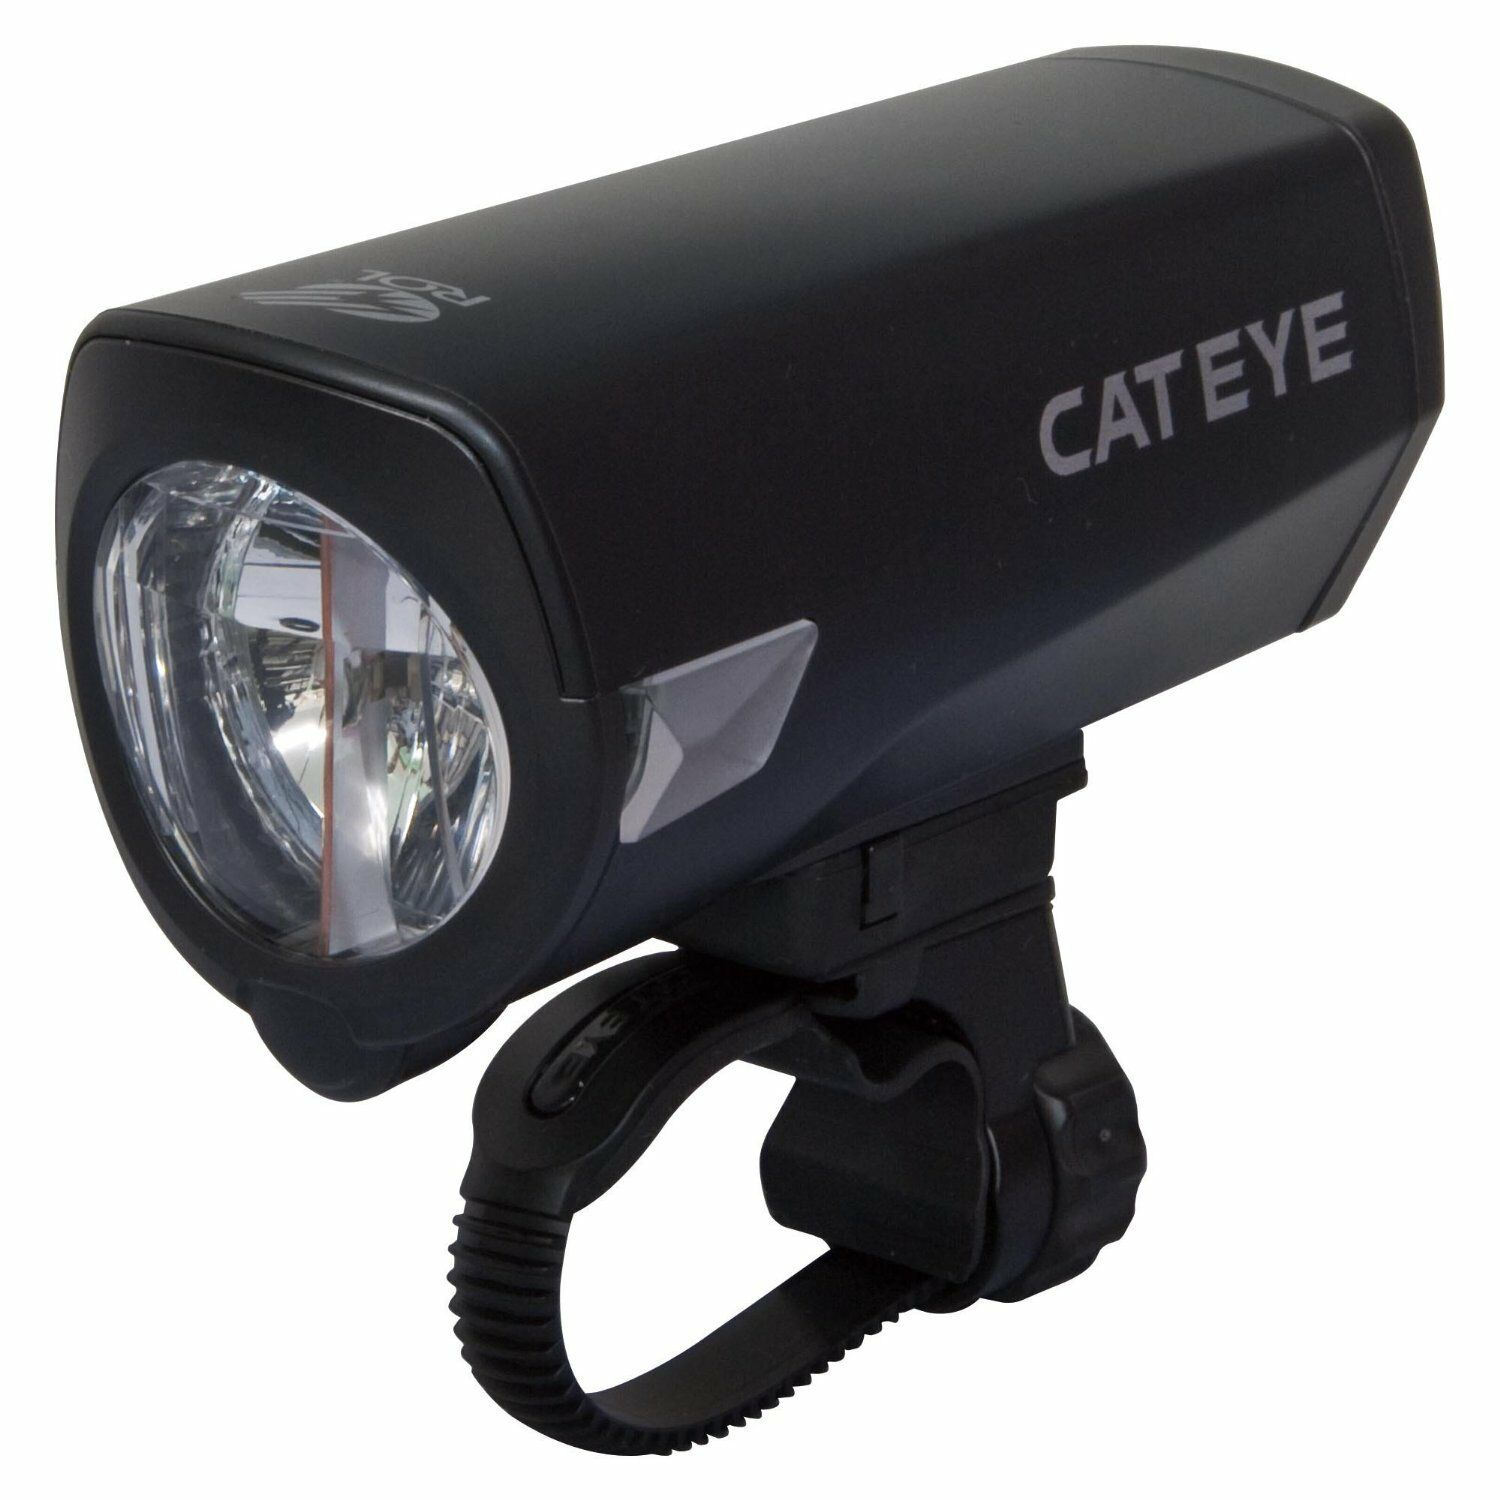 F S CAT EYE Head Light ECONOM Force  RECHARGEABLE [HL-EL540RC]  Ships from Japan